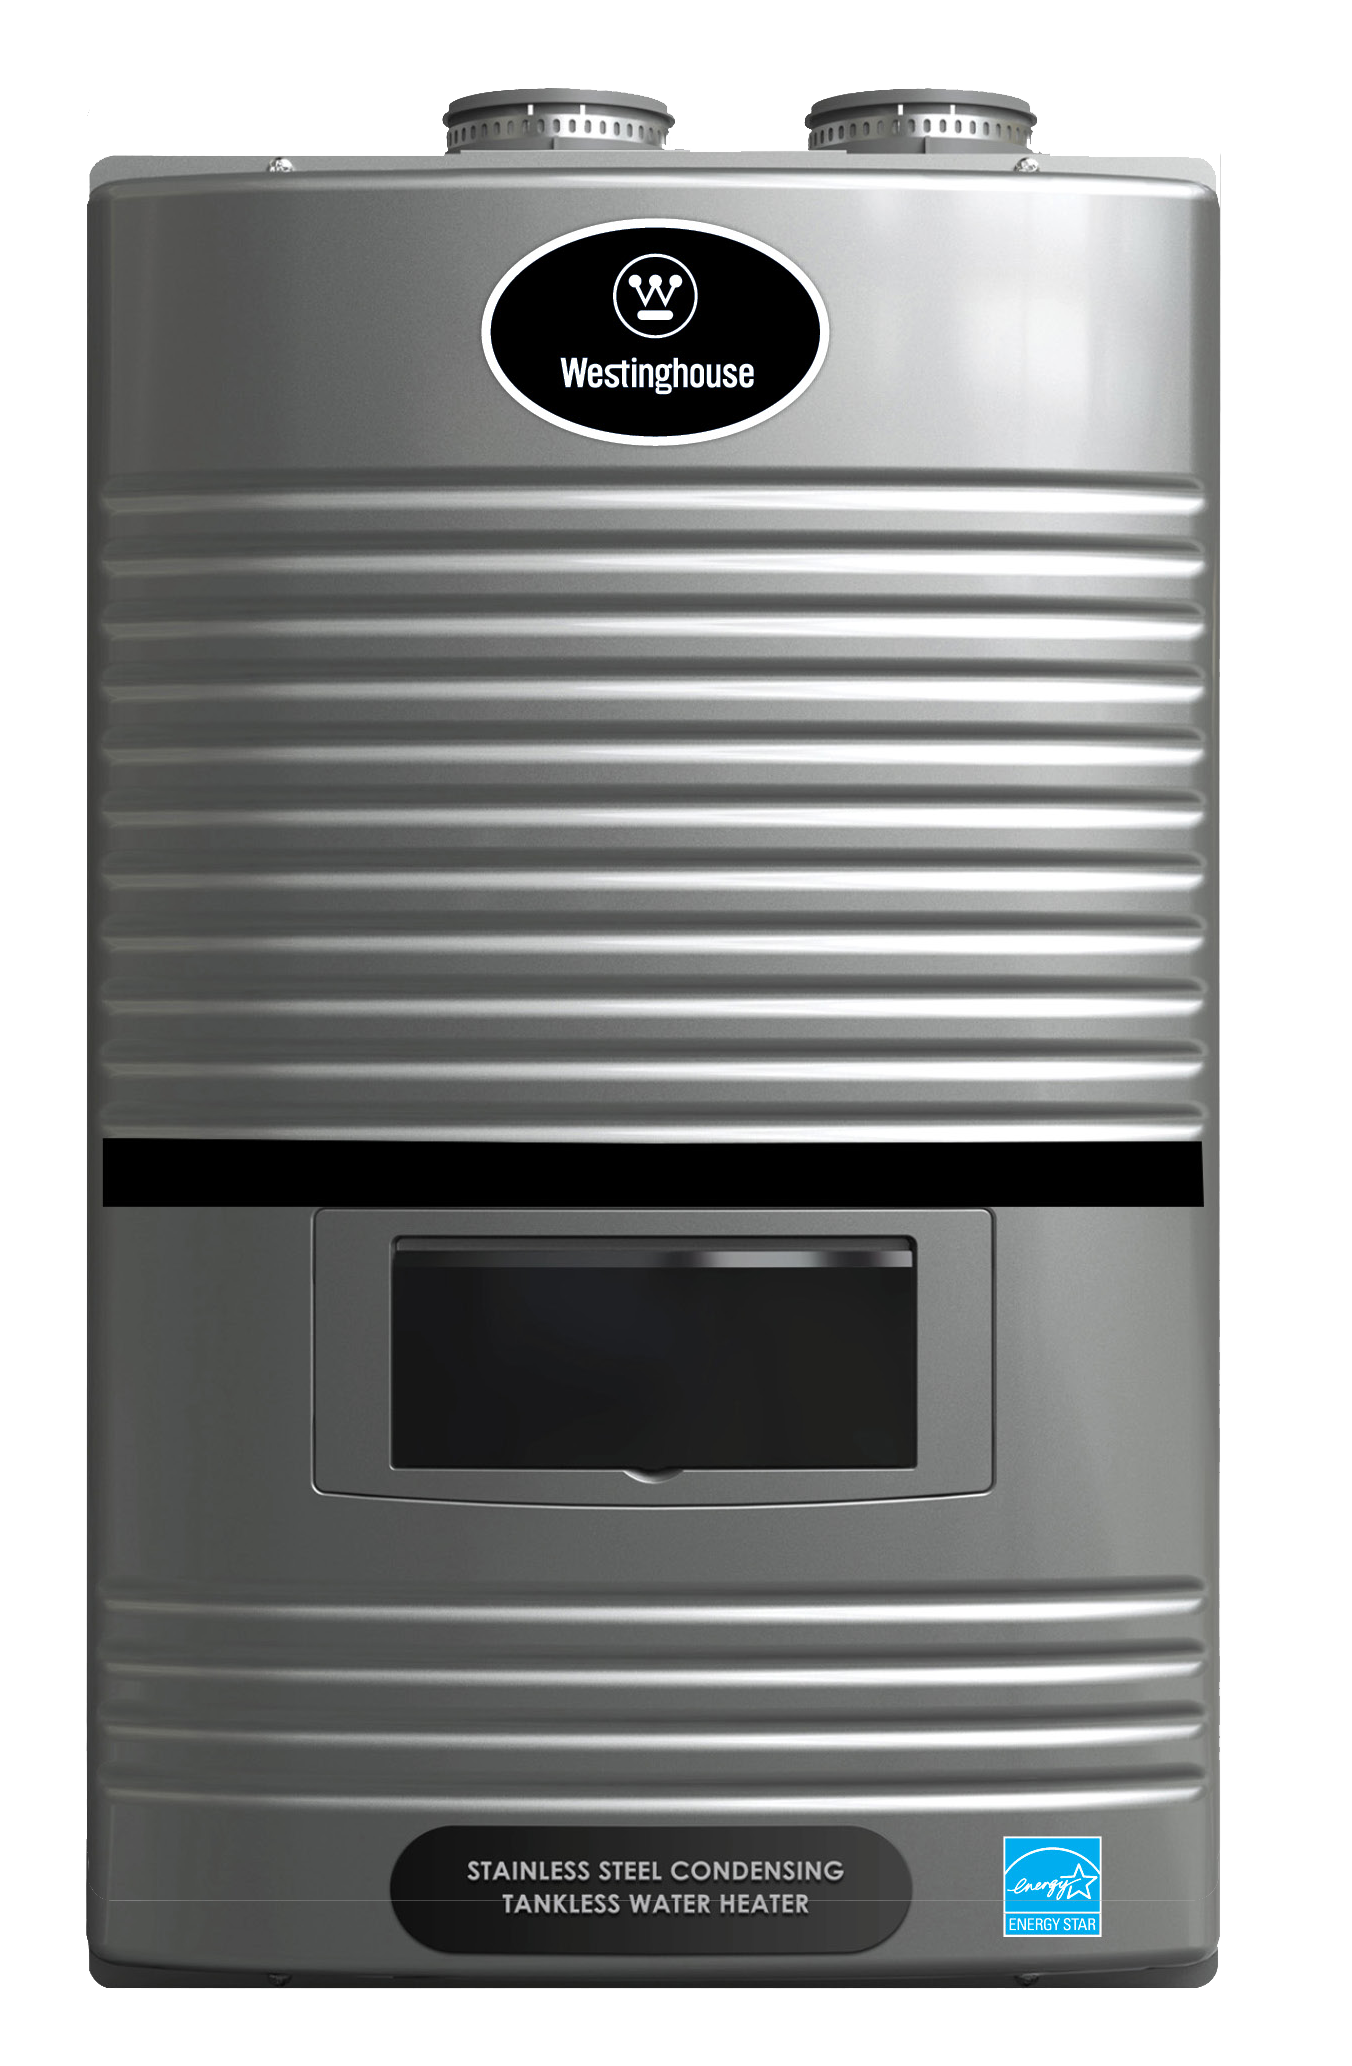 Westinghouse Tankless Water Heater